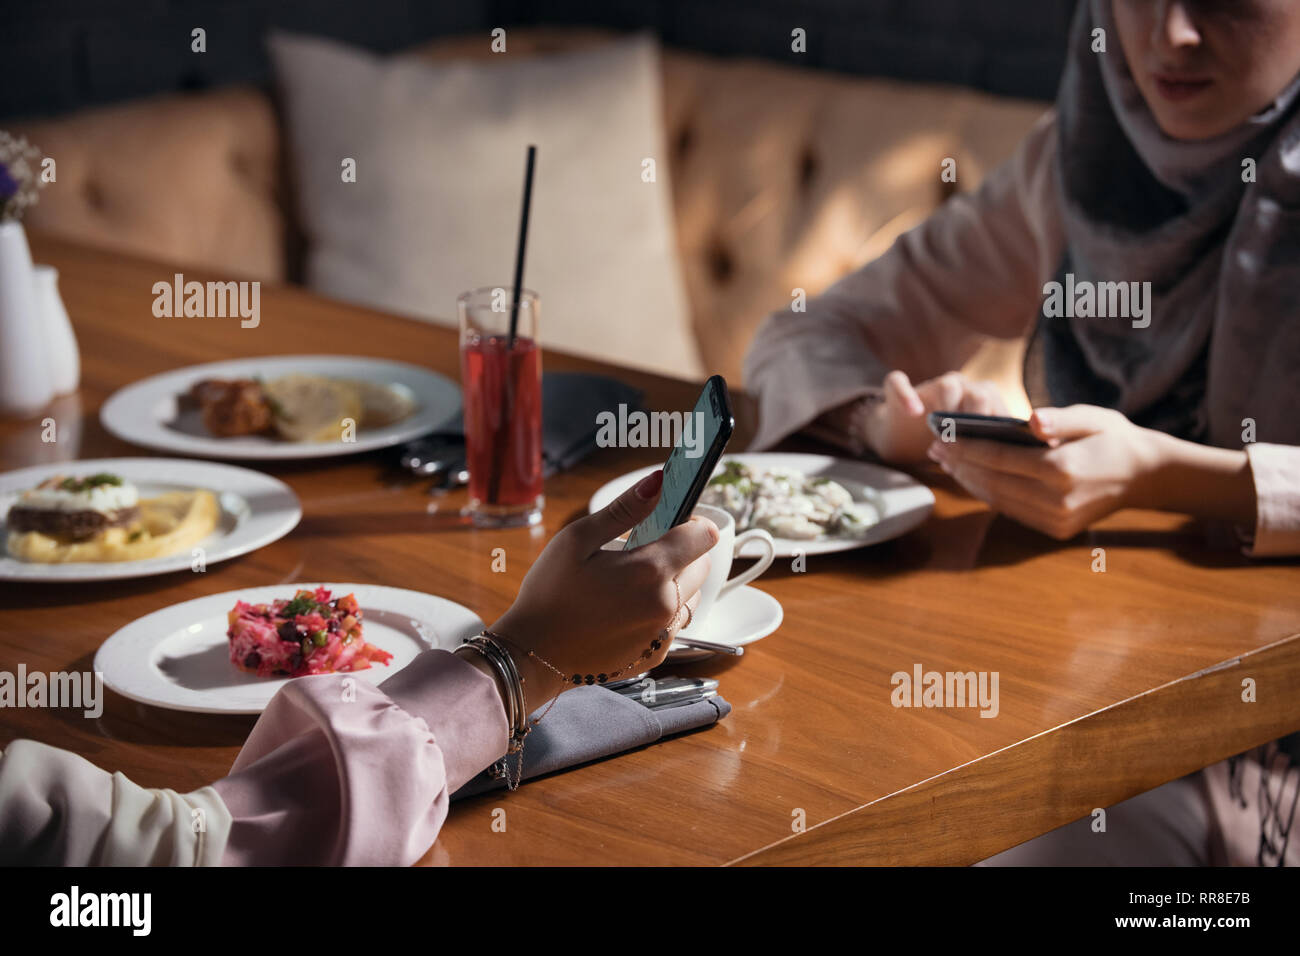 Two Muslim women sit with gadgets at a table in a restaurant - Stock Image